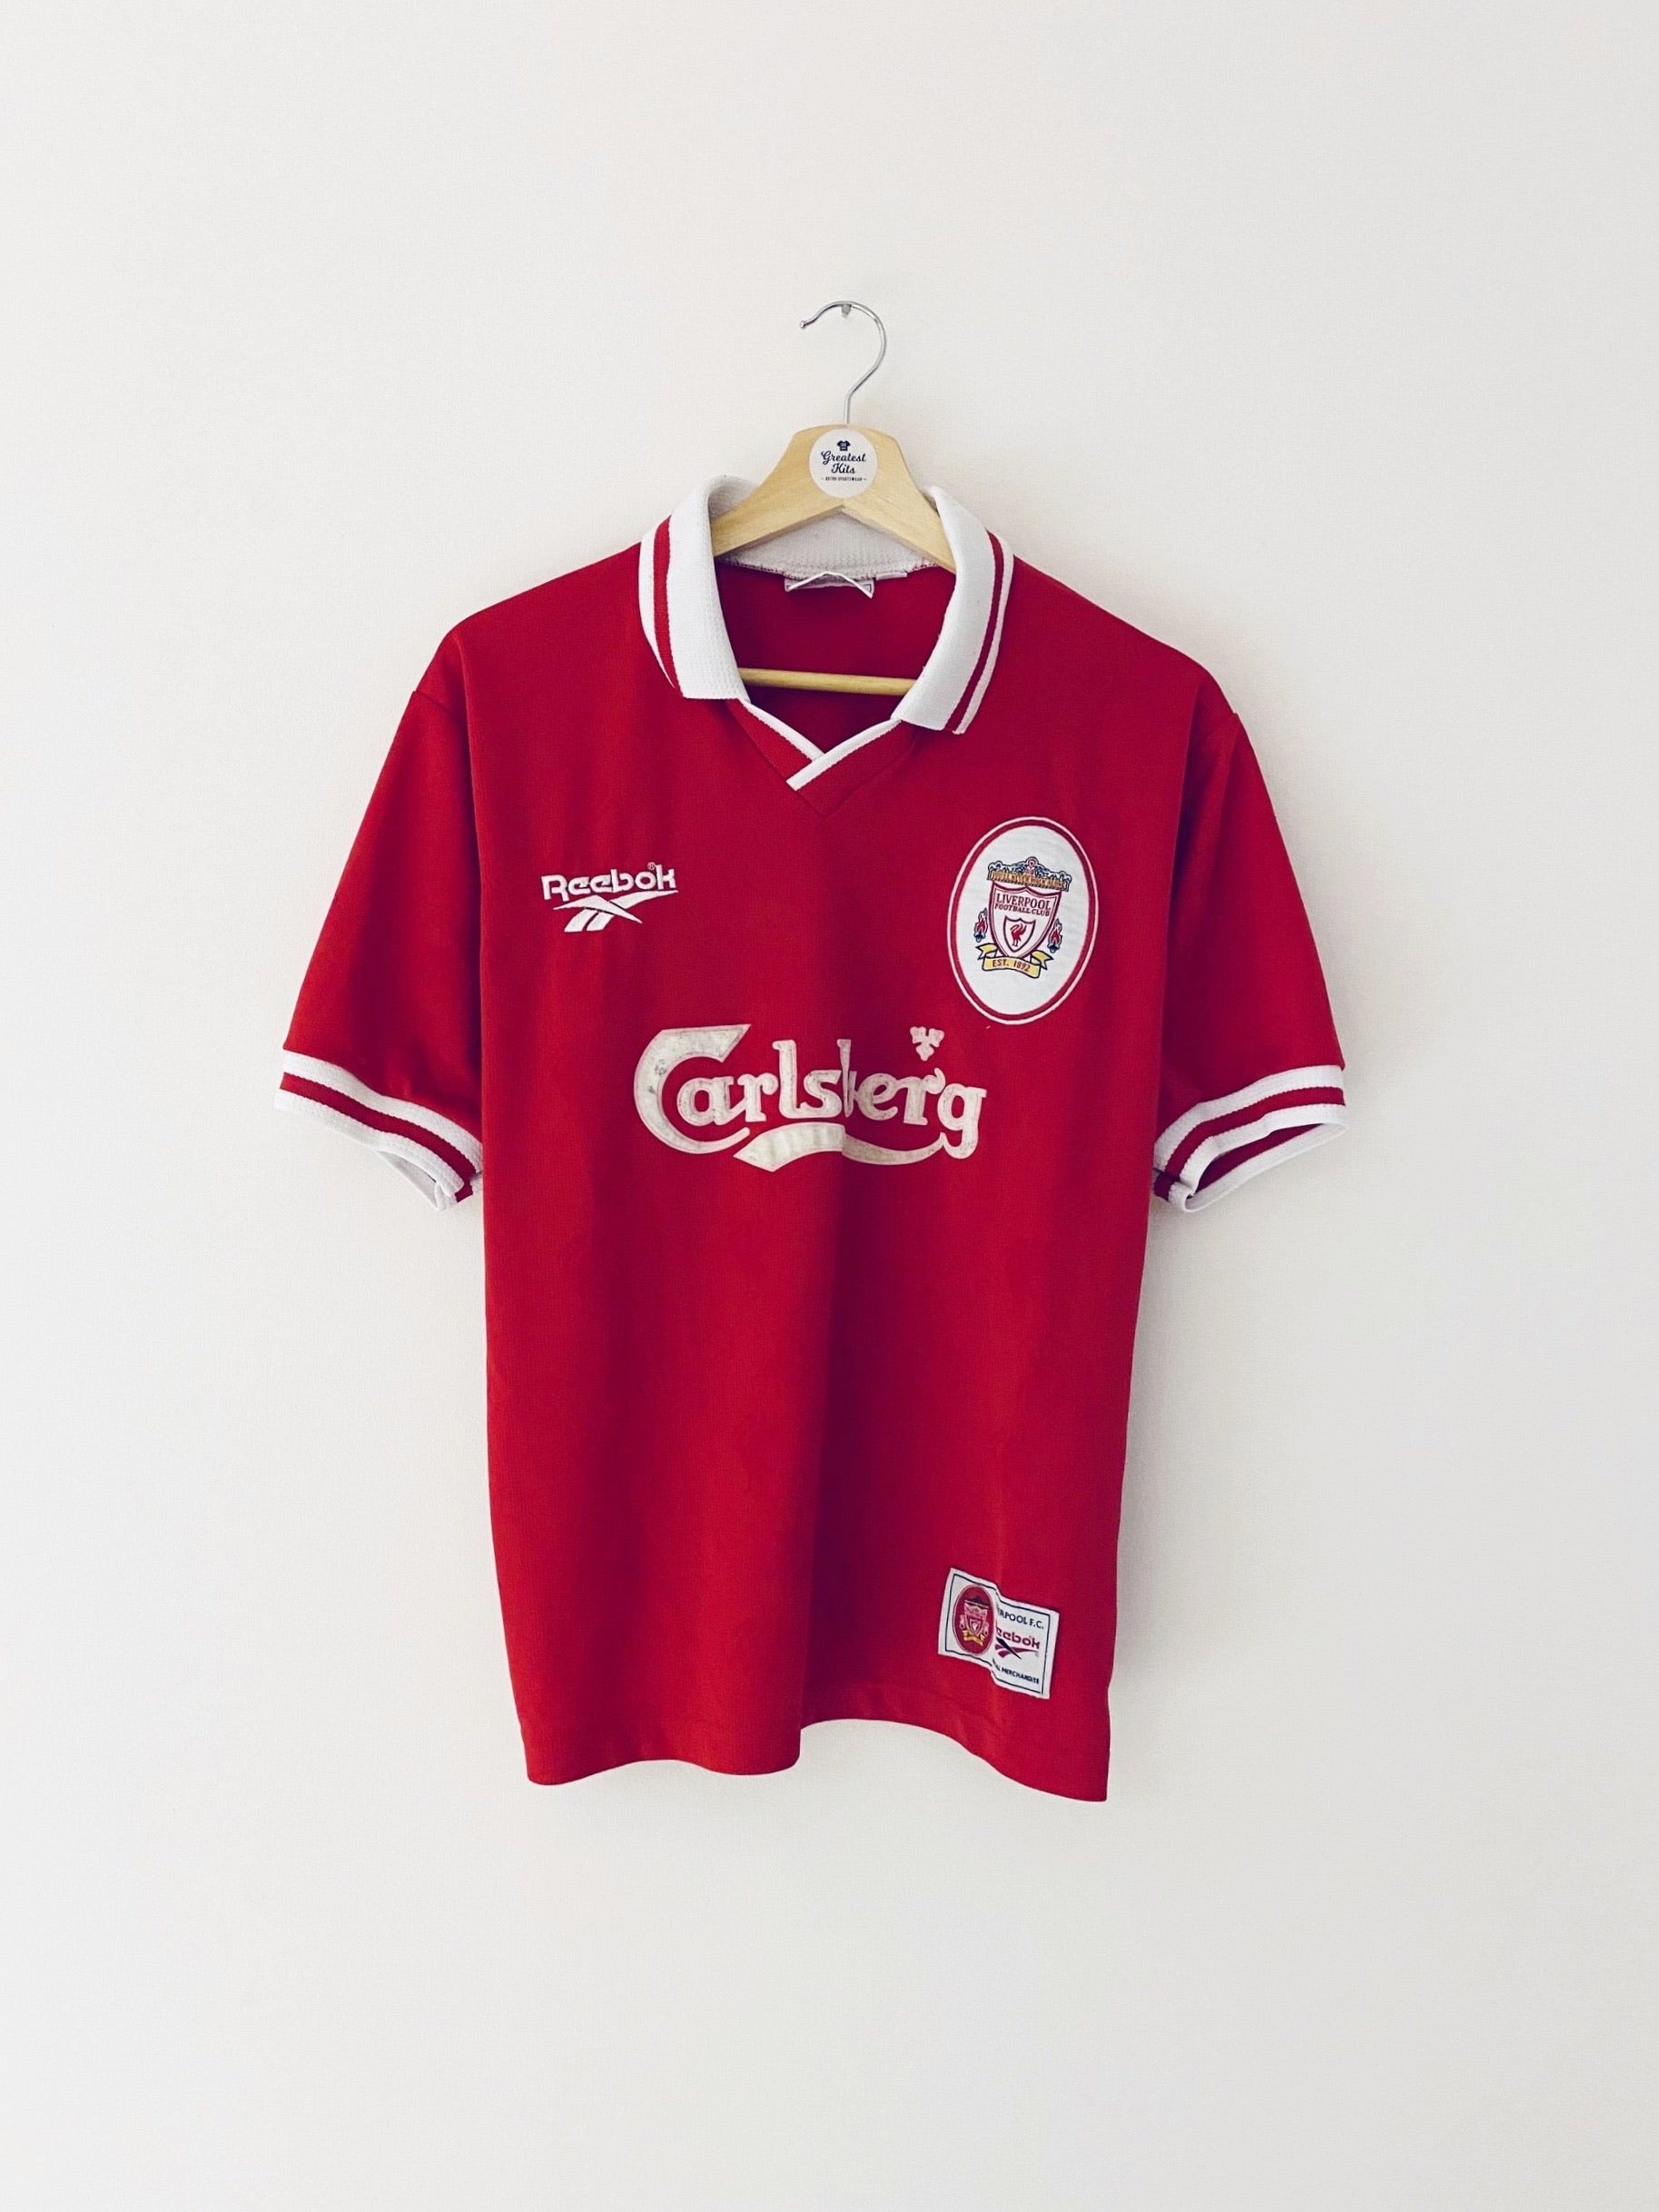 1996/98 Liverpool Home Shirt (S) 6.5/10